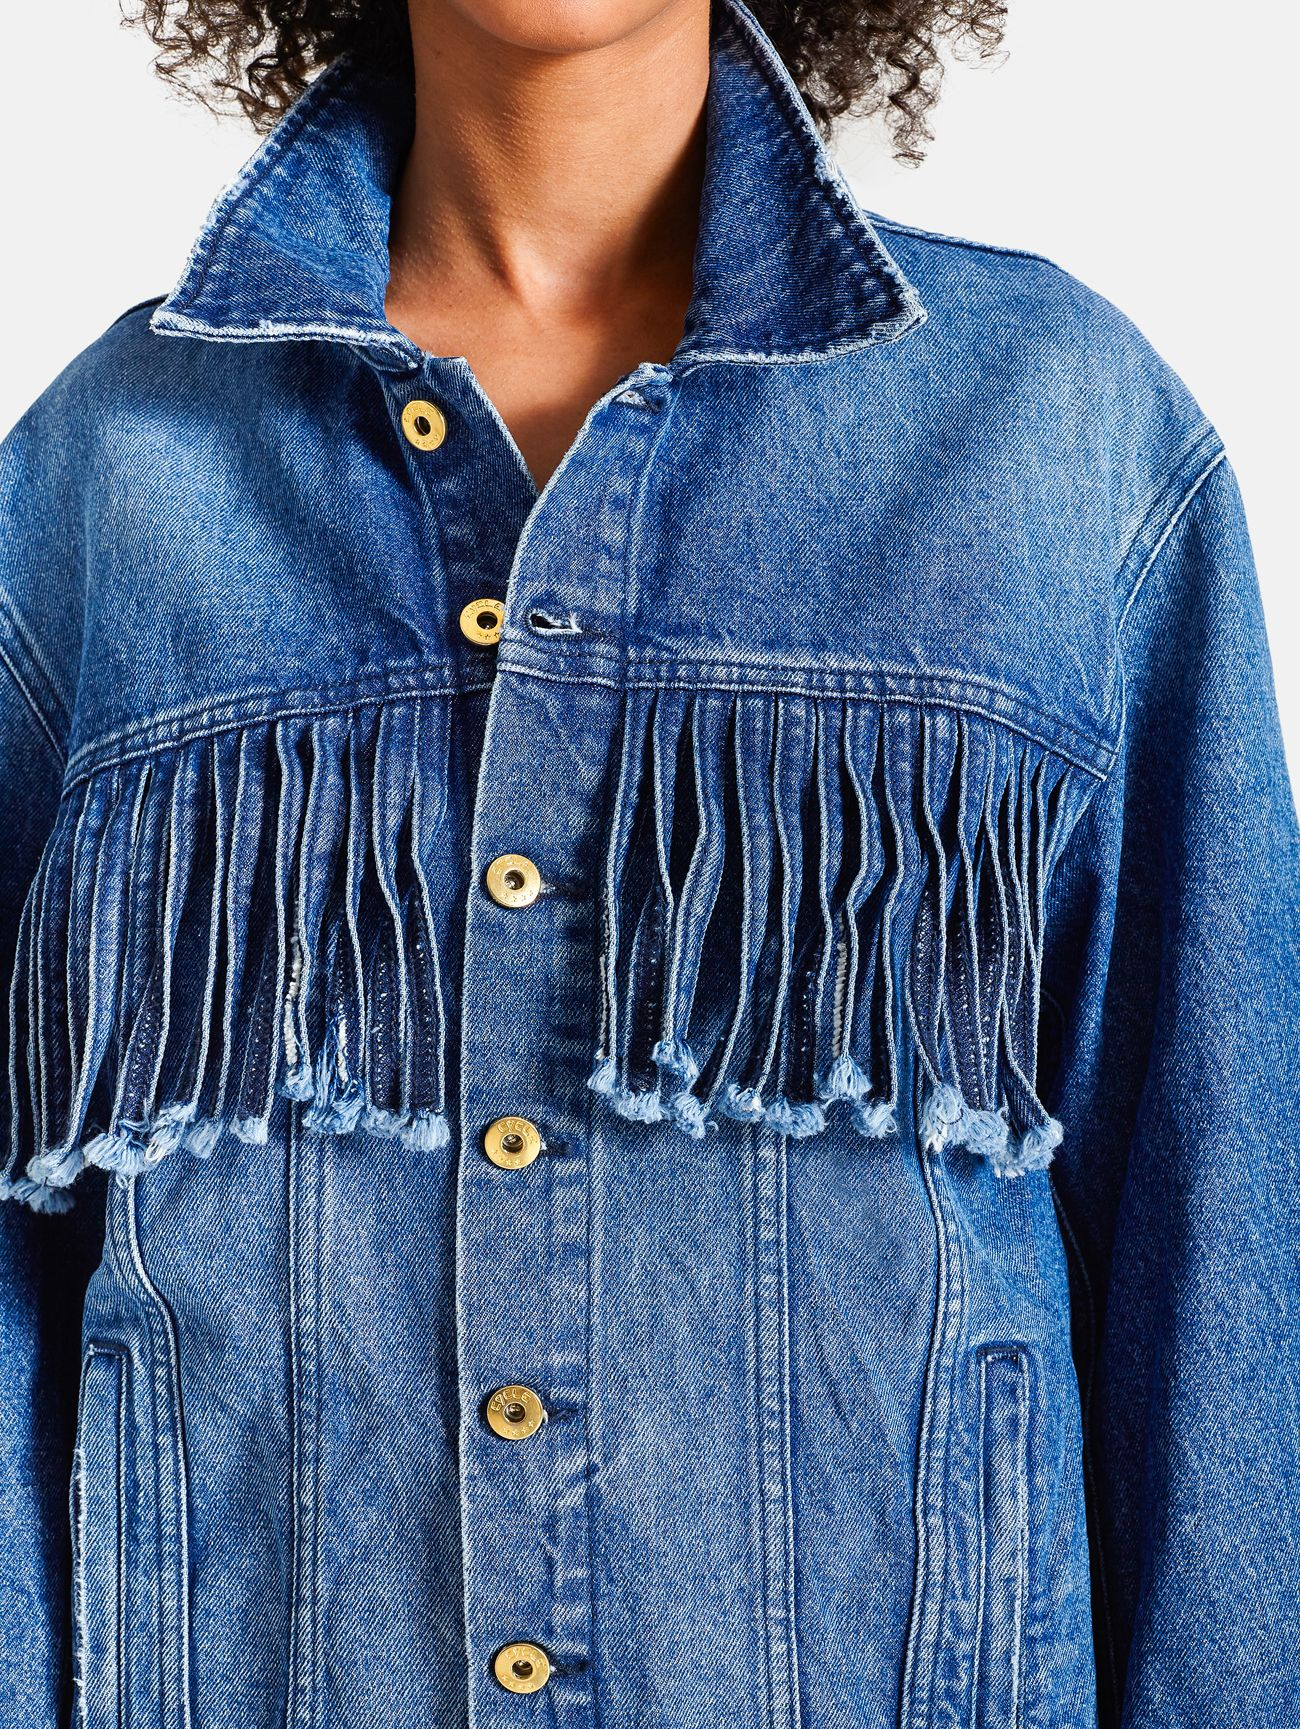 FRINGED JACKET OVER BROKEN NATURAL VINTAGE BLUE